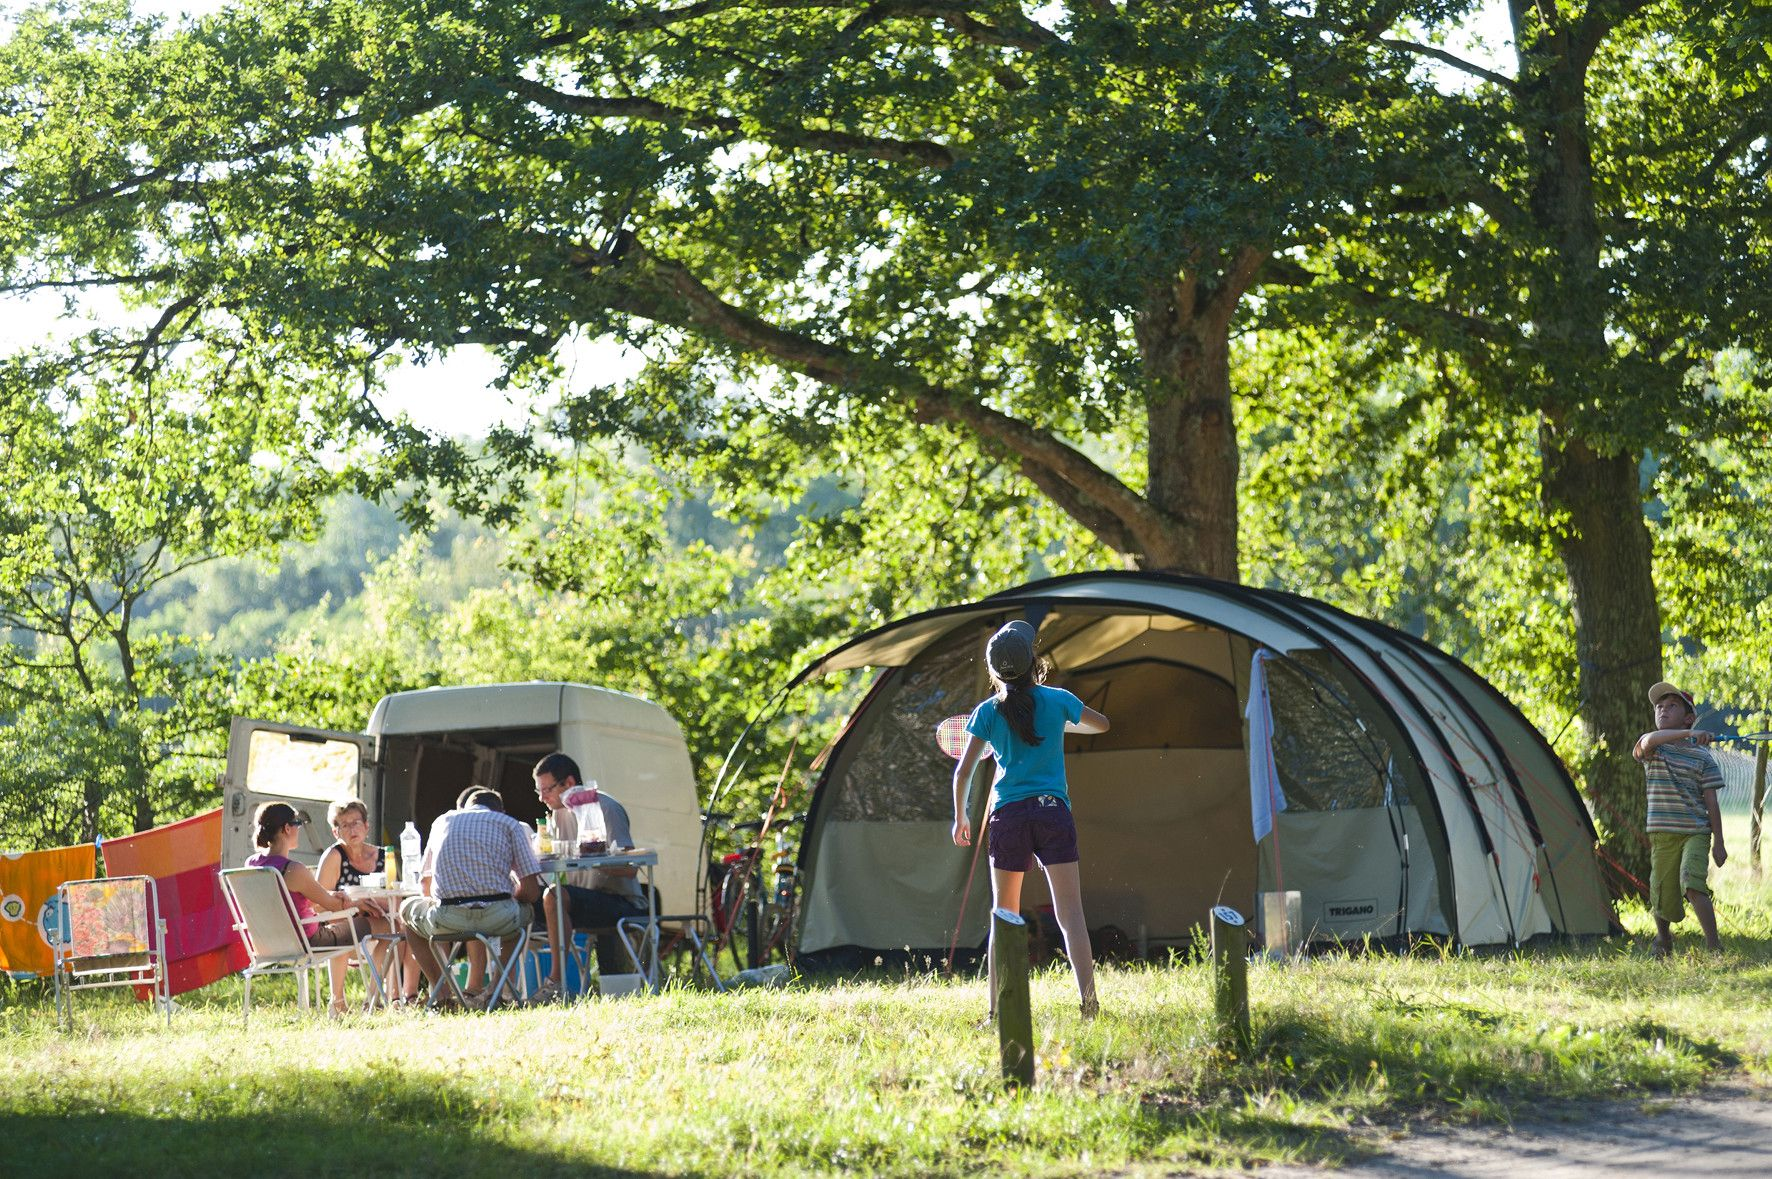 camping deals 15 off stays at huttopia campsites across. Black Bedroom Furniture Sets. Home Design Ideas